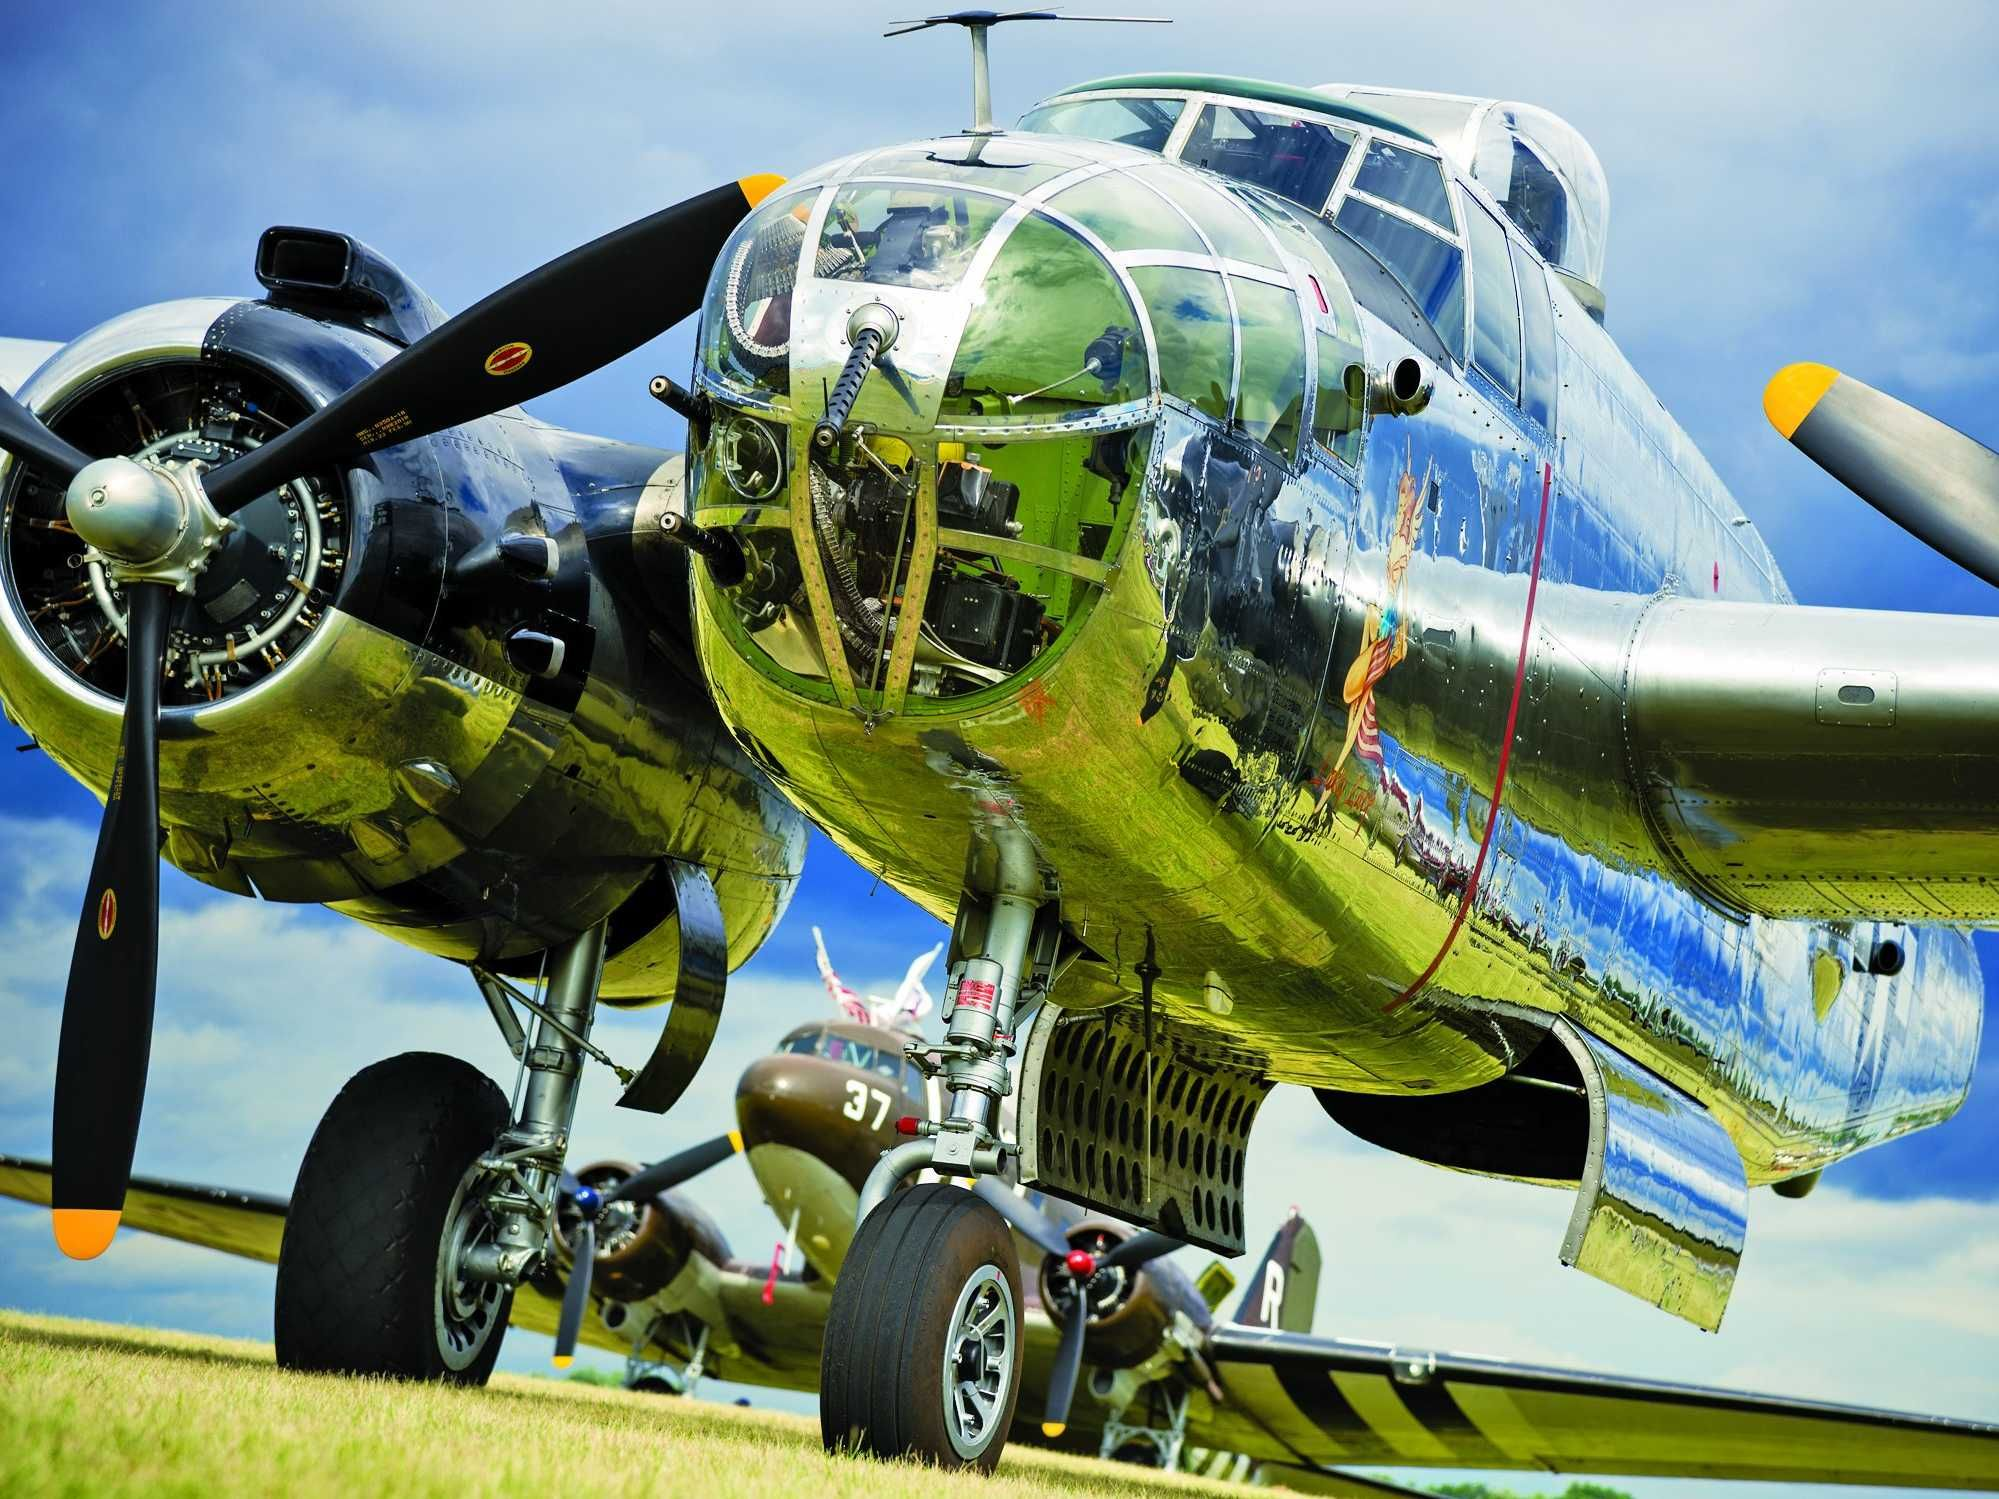 Photos Of Flying Cars And Vintage Warbirds From A